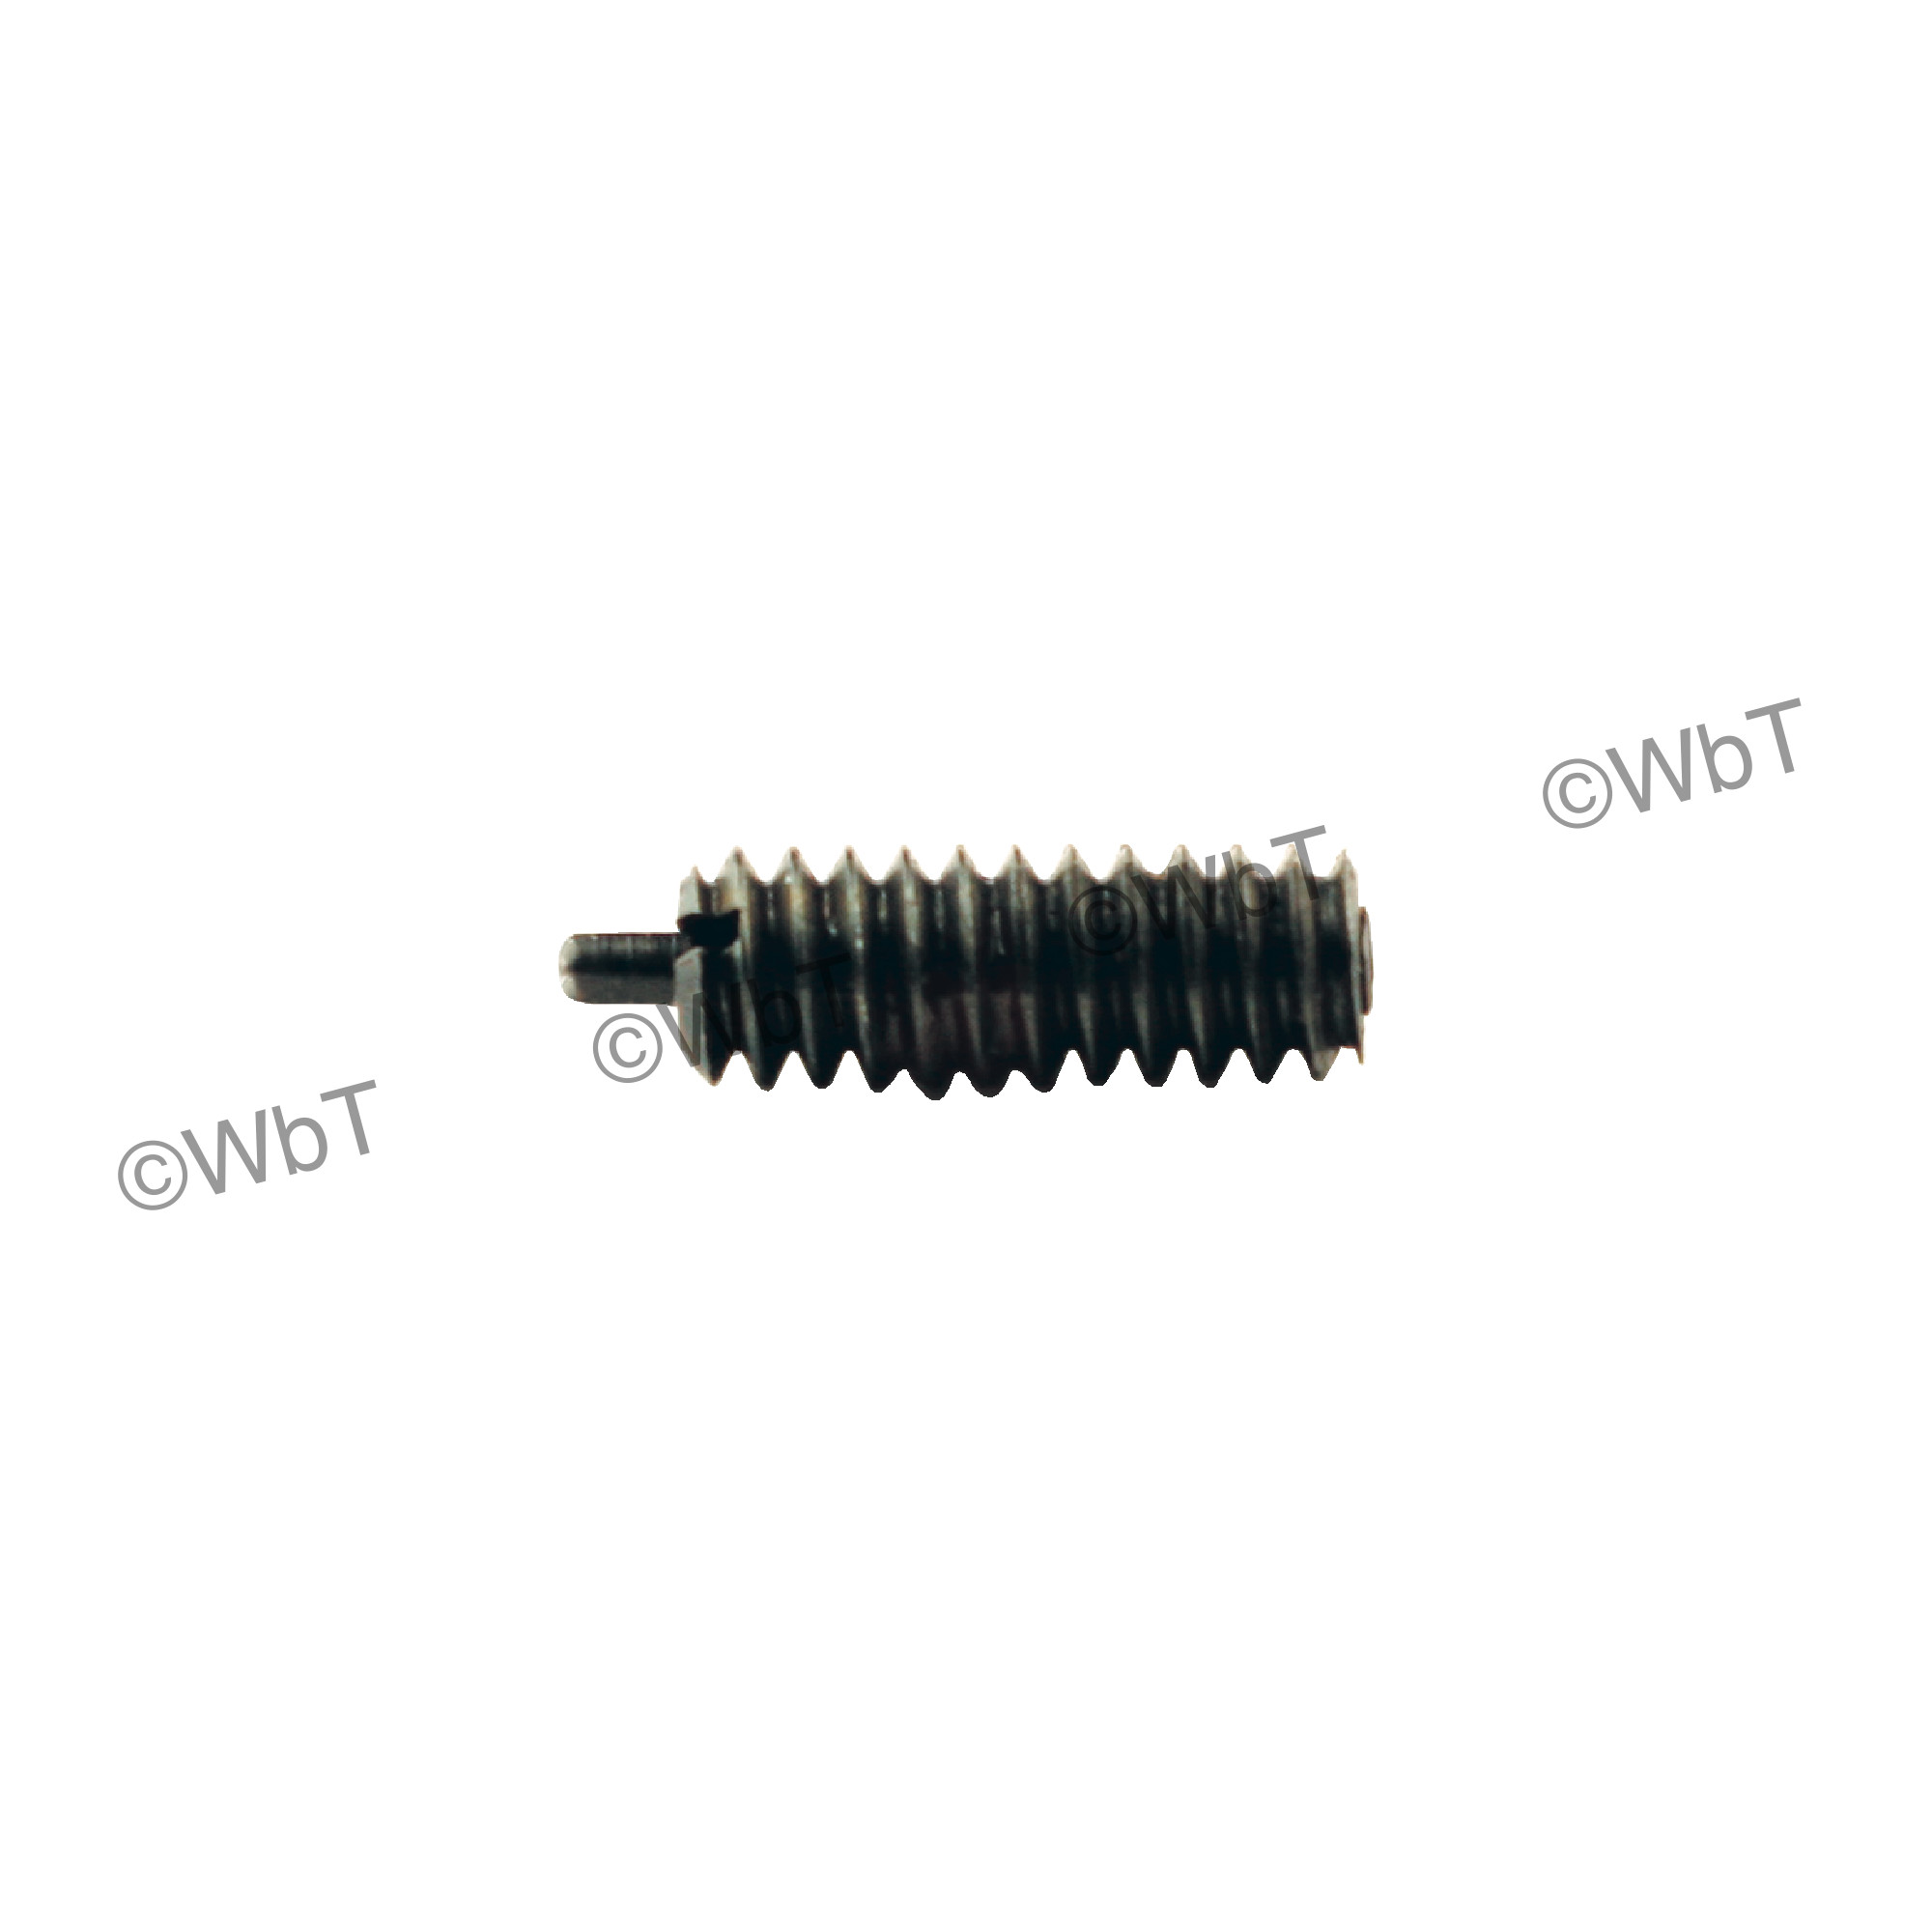 Threaded Spring Plunger With Nylon Patch